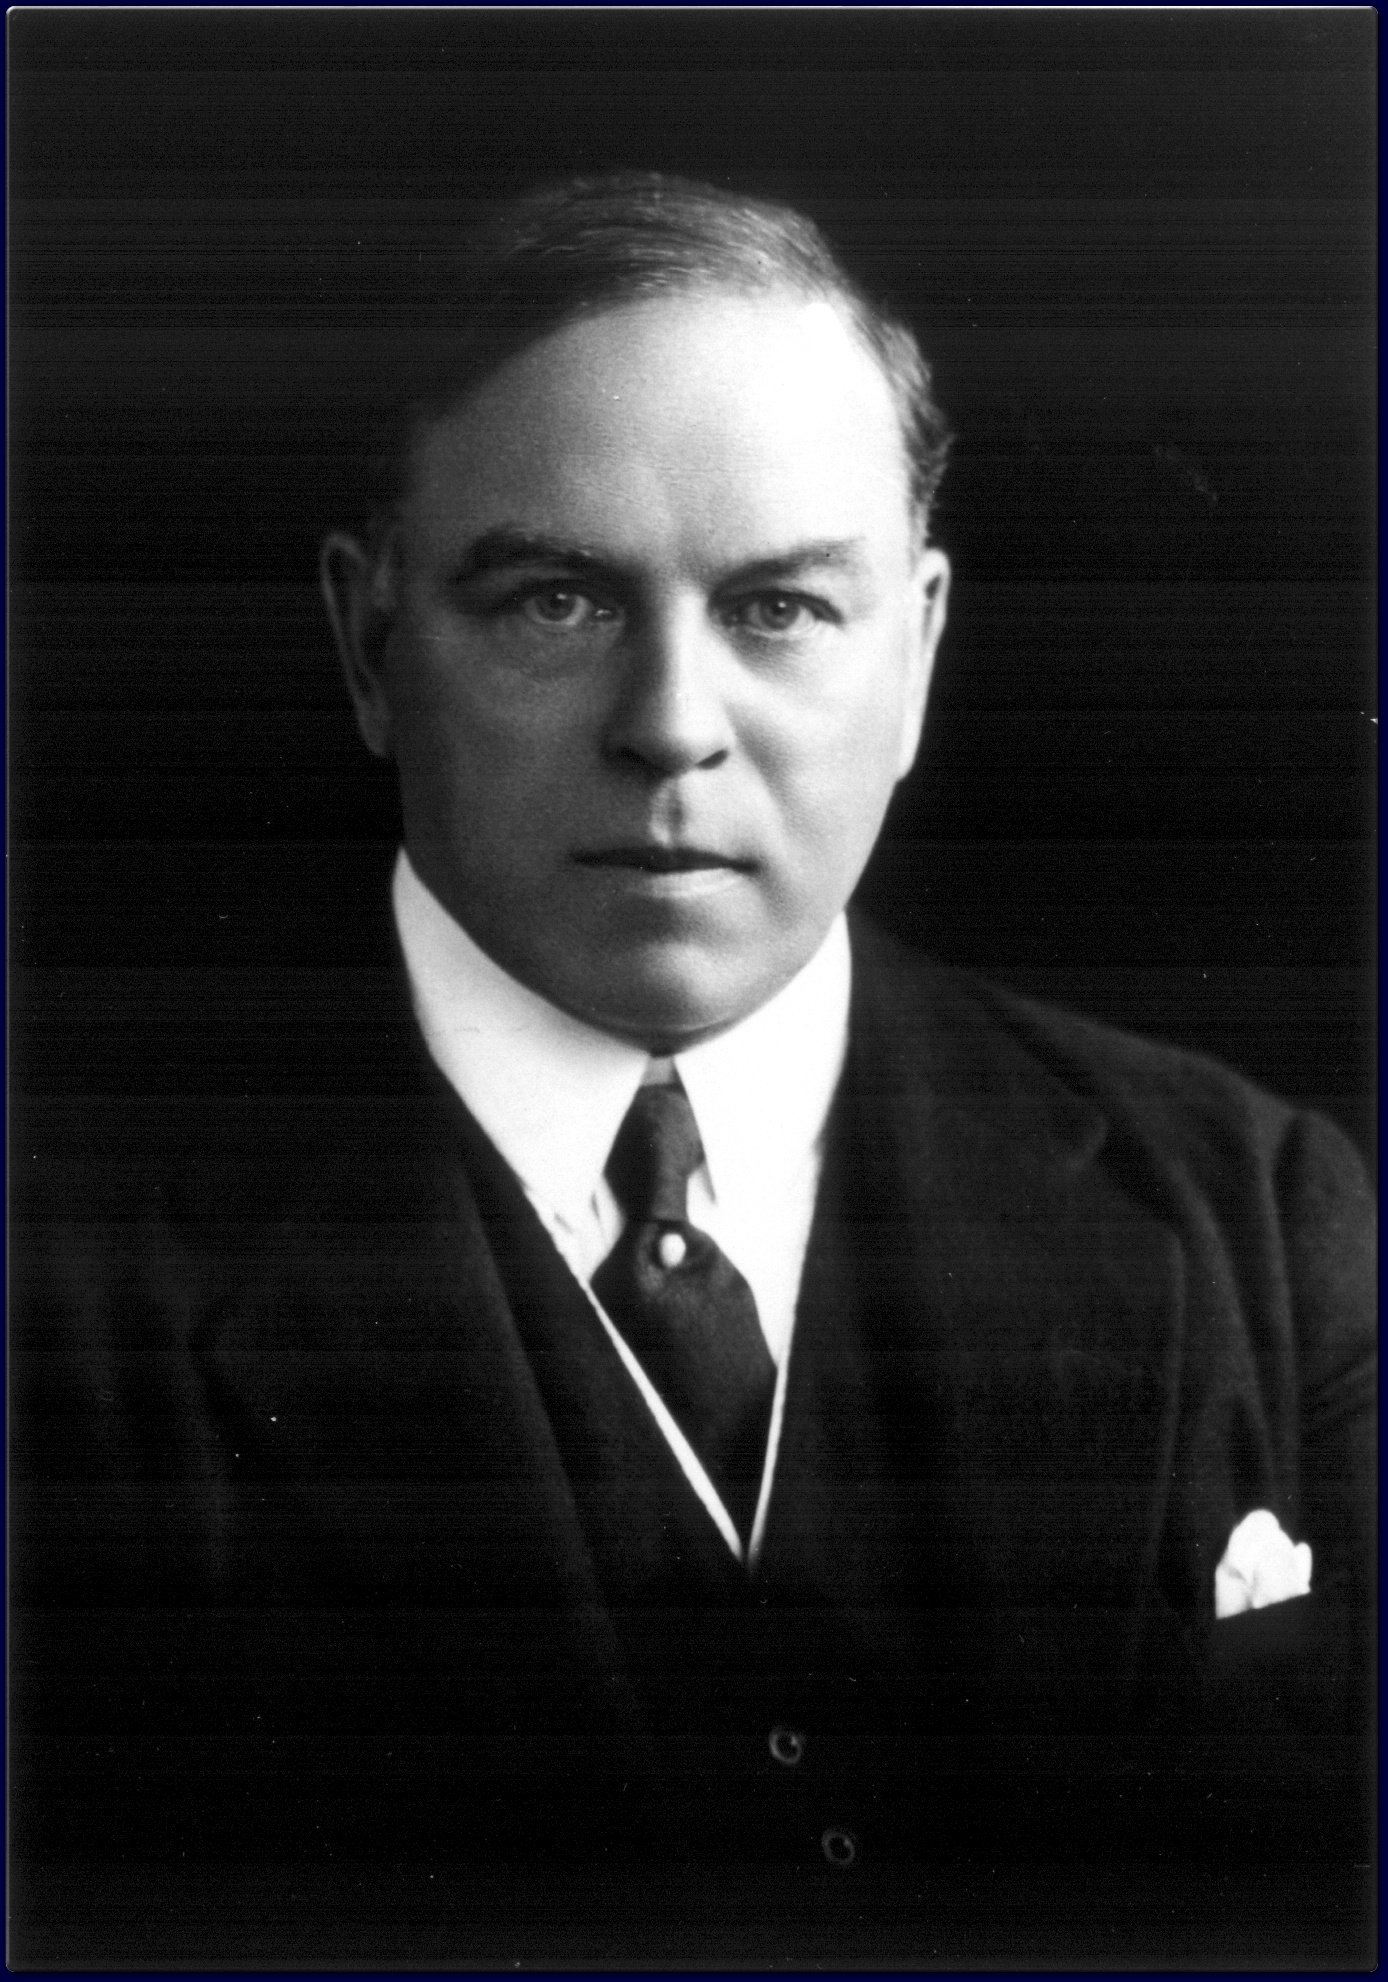 a biography of william lyon mackenzie king the prime minister of canada Great depression, liberals, ineffective leader - biography of mackenzie king, the longest serving prime minister of canada.